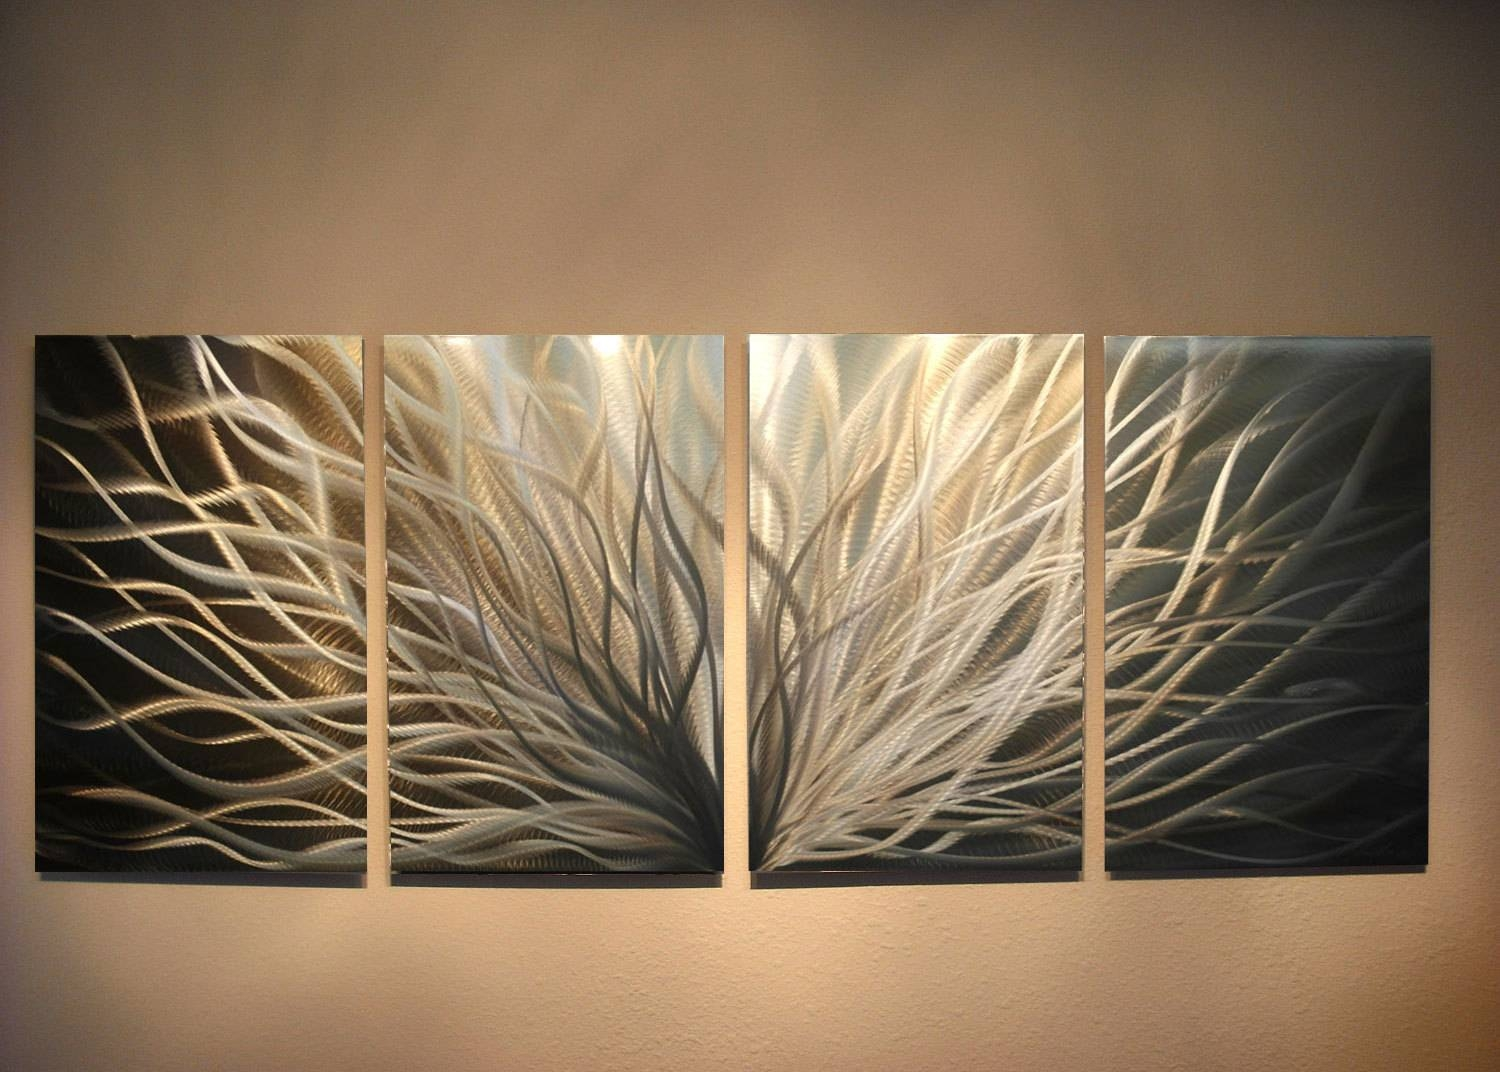 Metal Art Wall Art Decor Aluminum Abstract Contemporary Modern throughout Most Up-to-Date Hanging Metal Wall Art